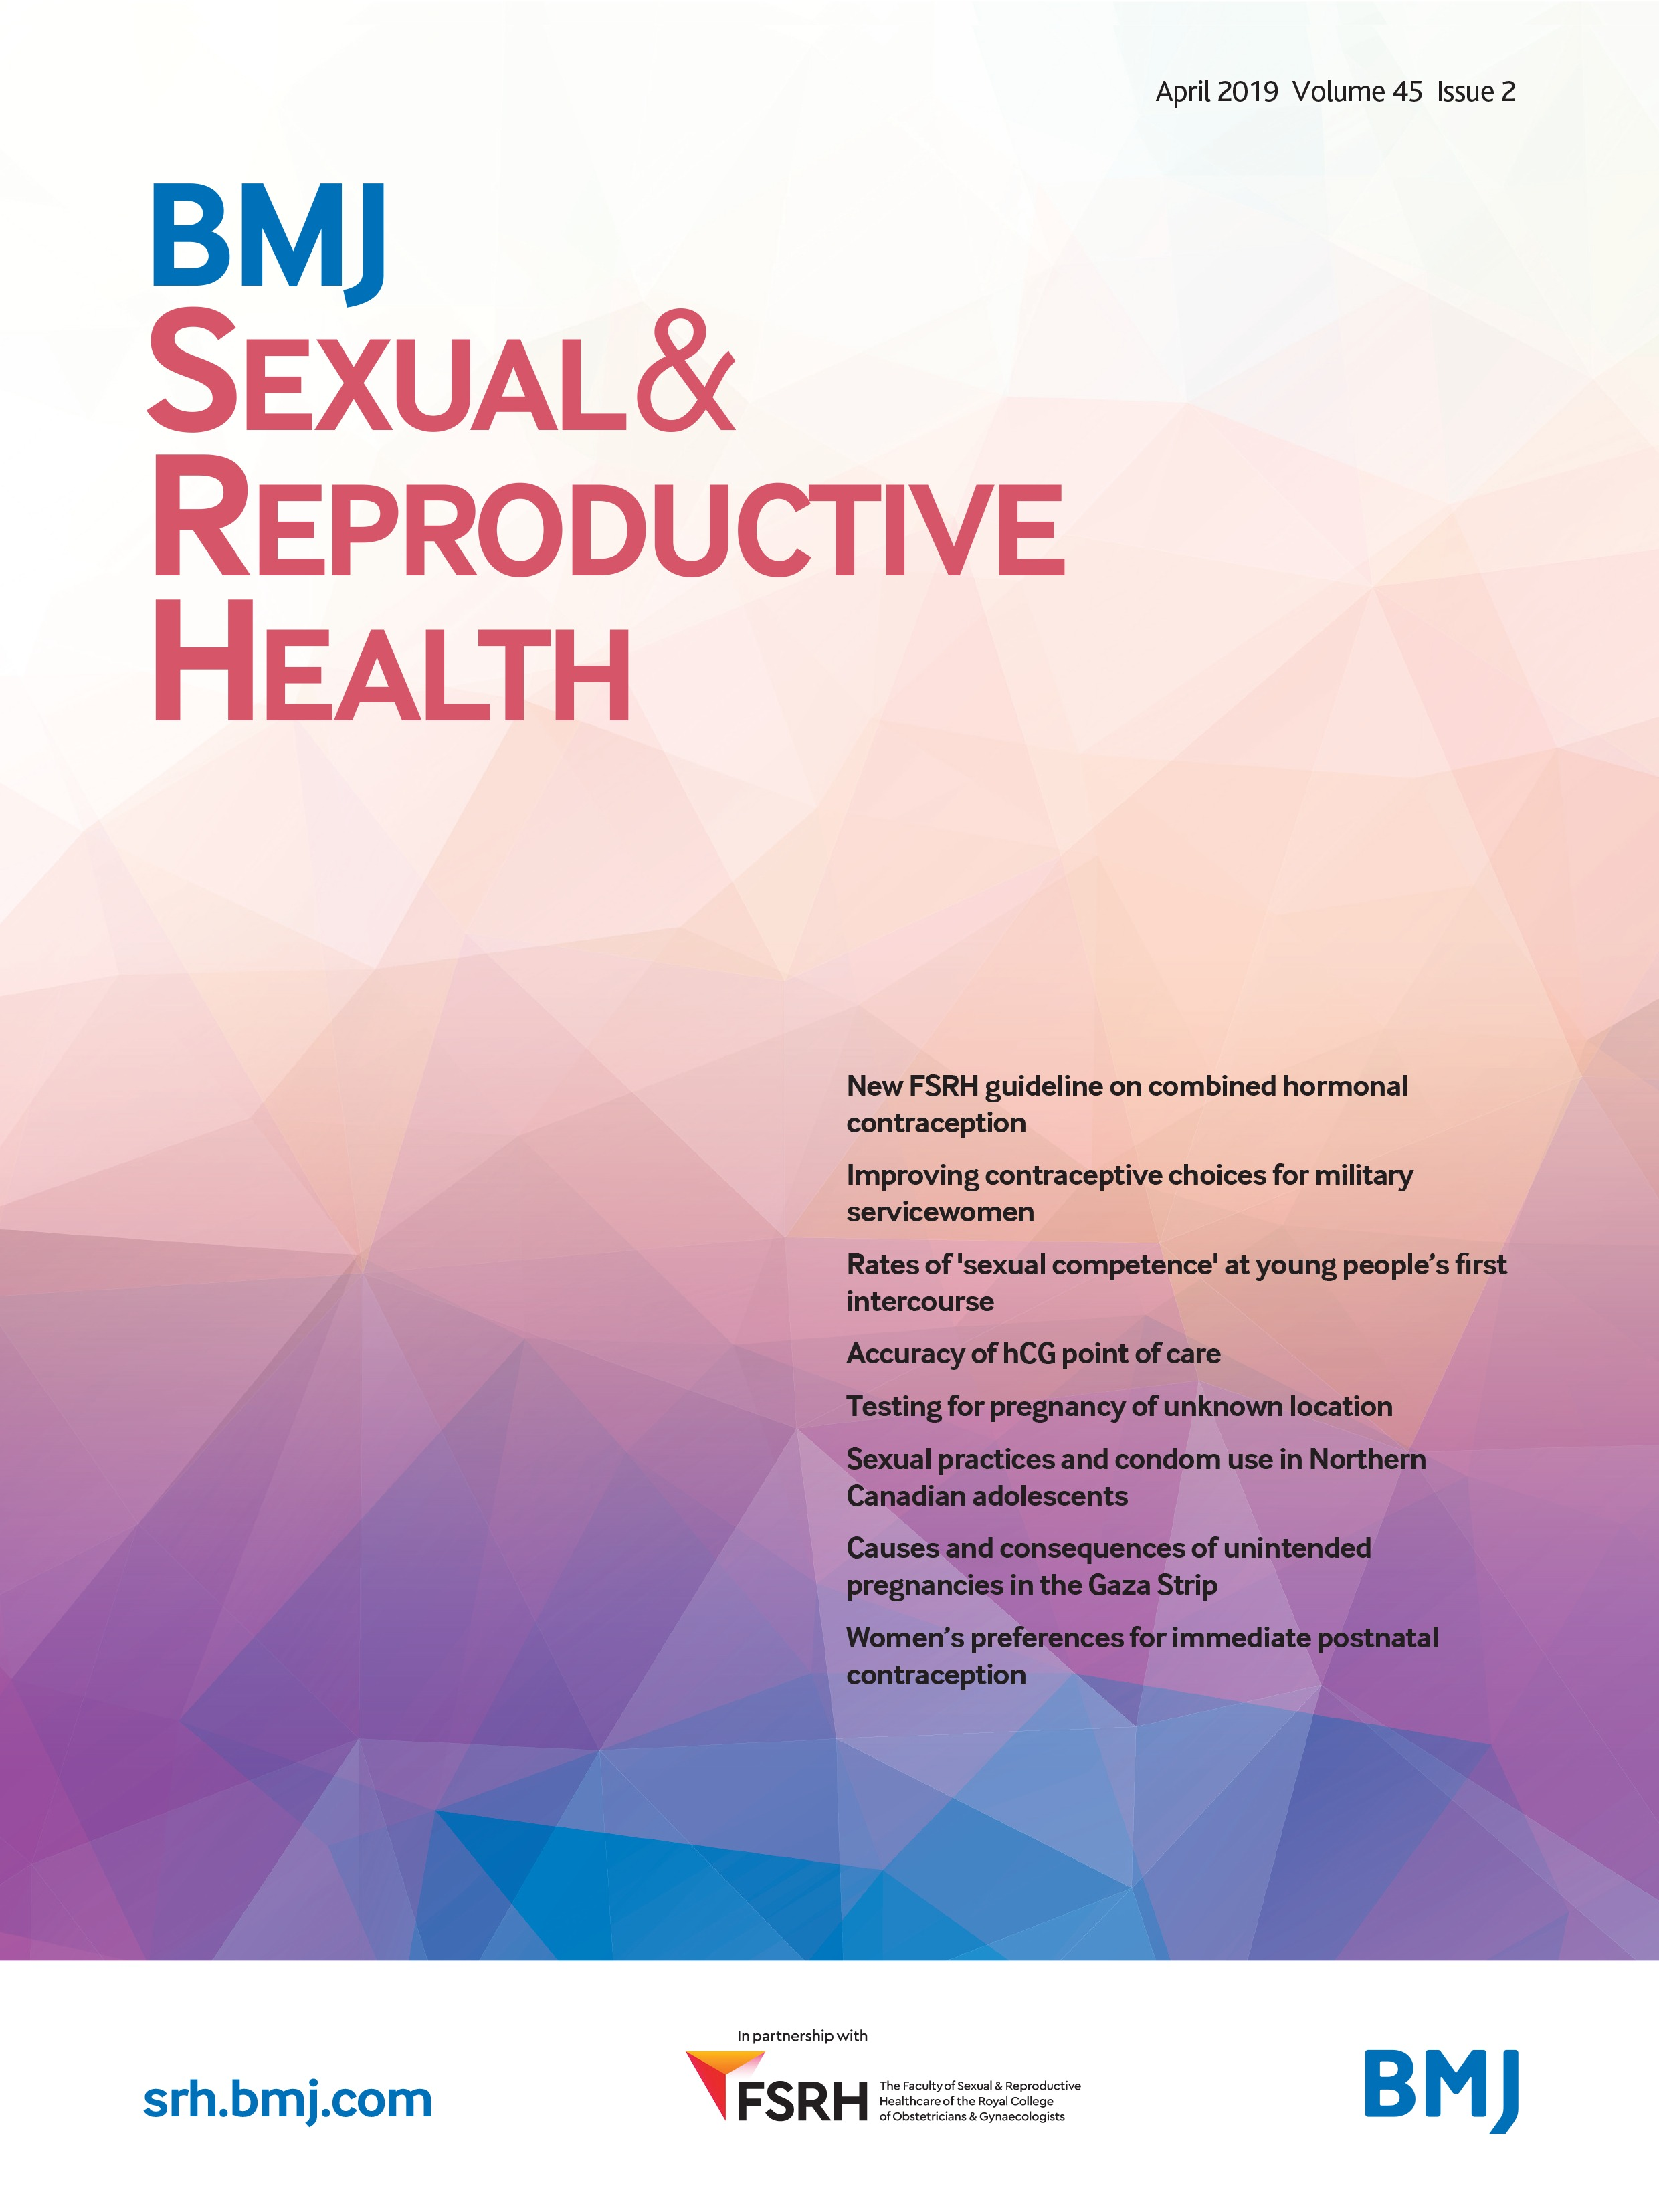 Shared decision-making | BMJ Sexual & Reproductive Health